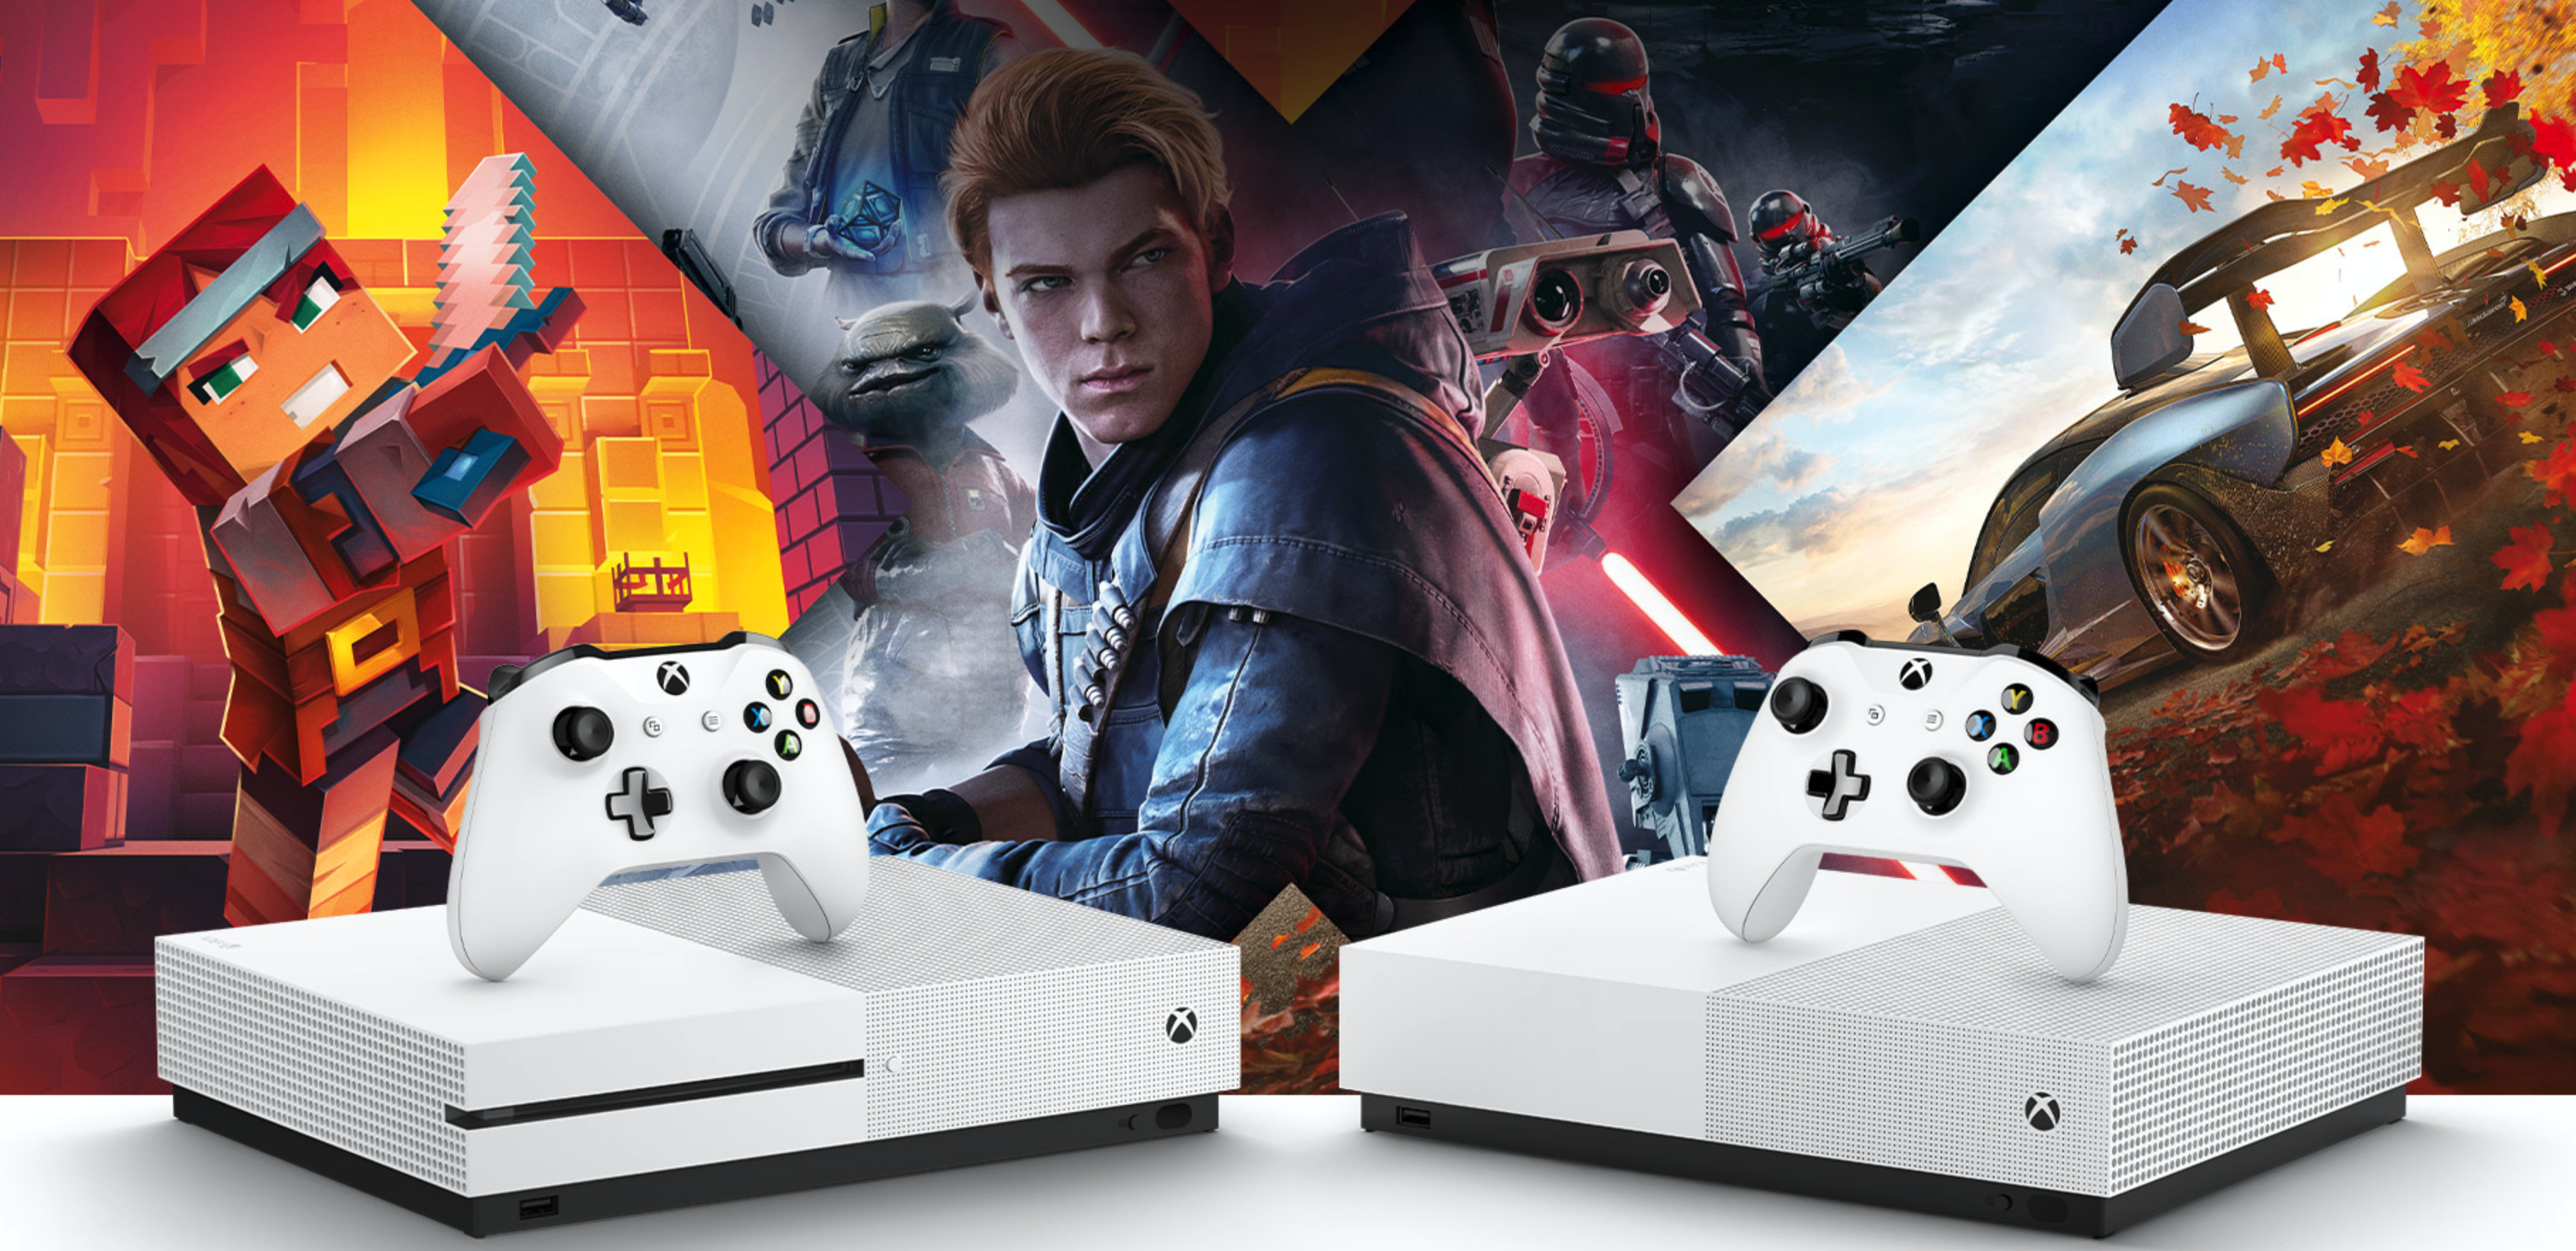 Xbox OneSとXbox One S All Digital Editionと5つのゲームソフト